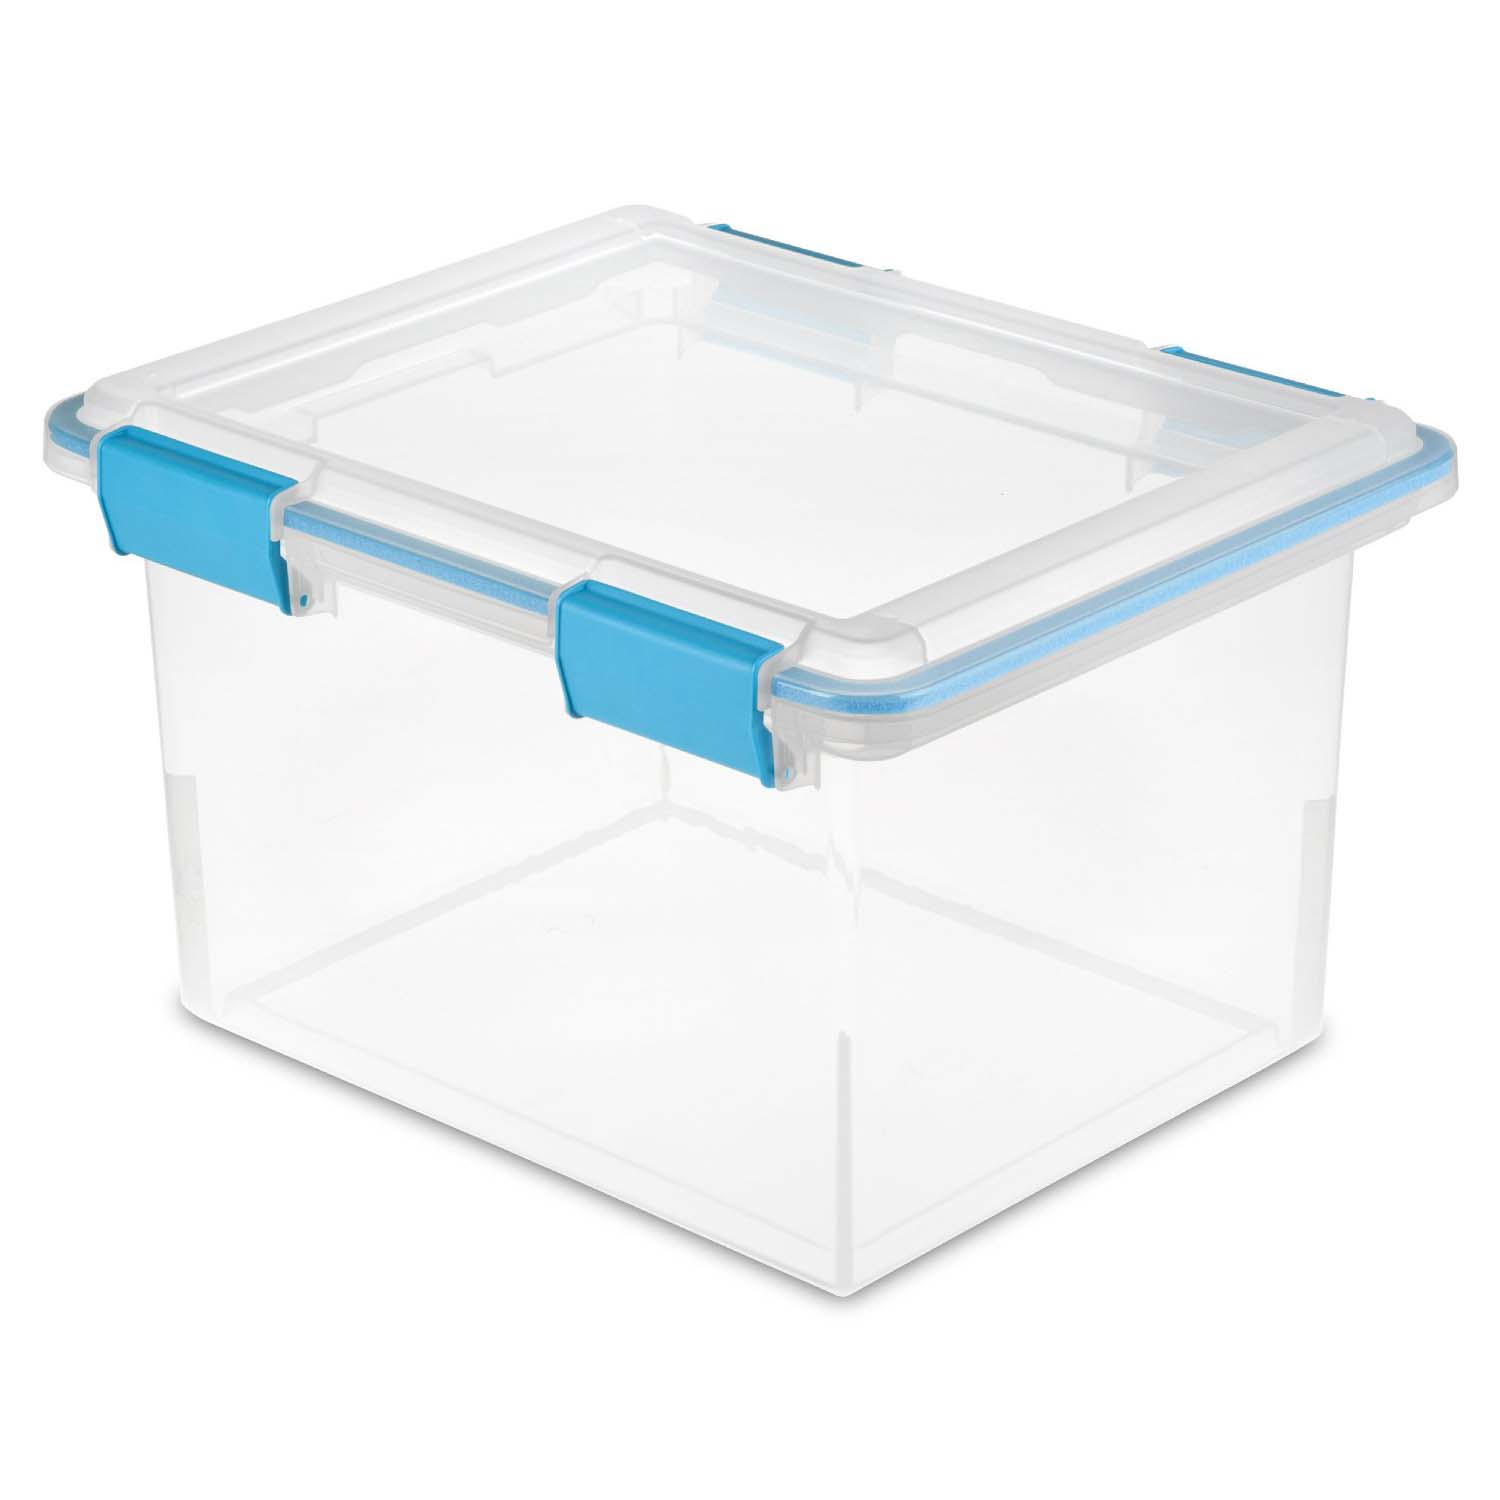 Sterilite 19334304 Clear 32 Quart Gasket Box with Clear Base and Lid 16 Pack